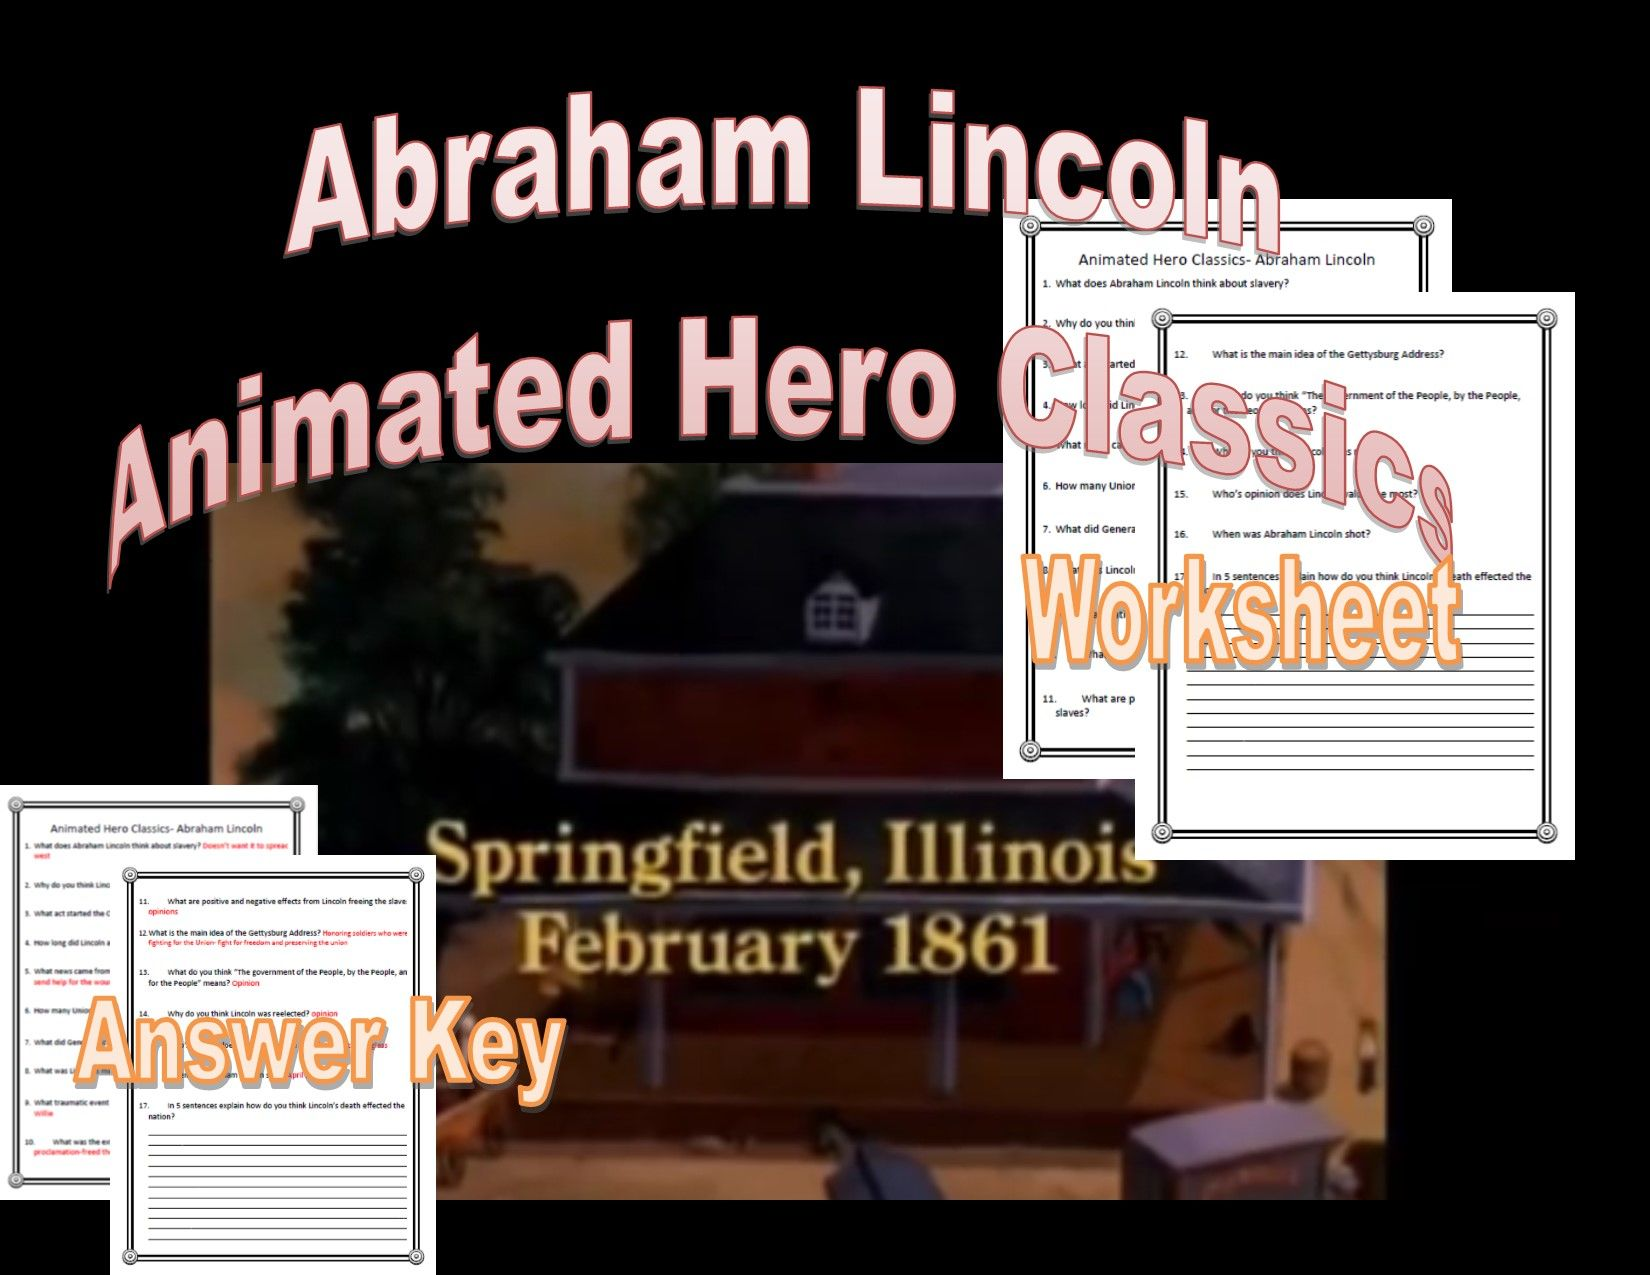 Abraham Lincoln Animated Hero Classics Cartoon Video